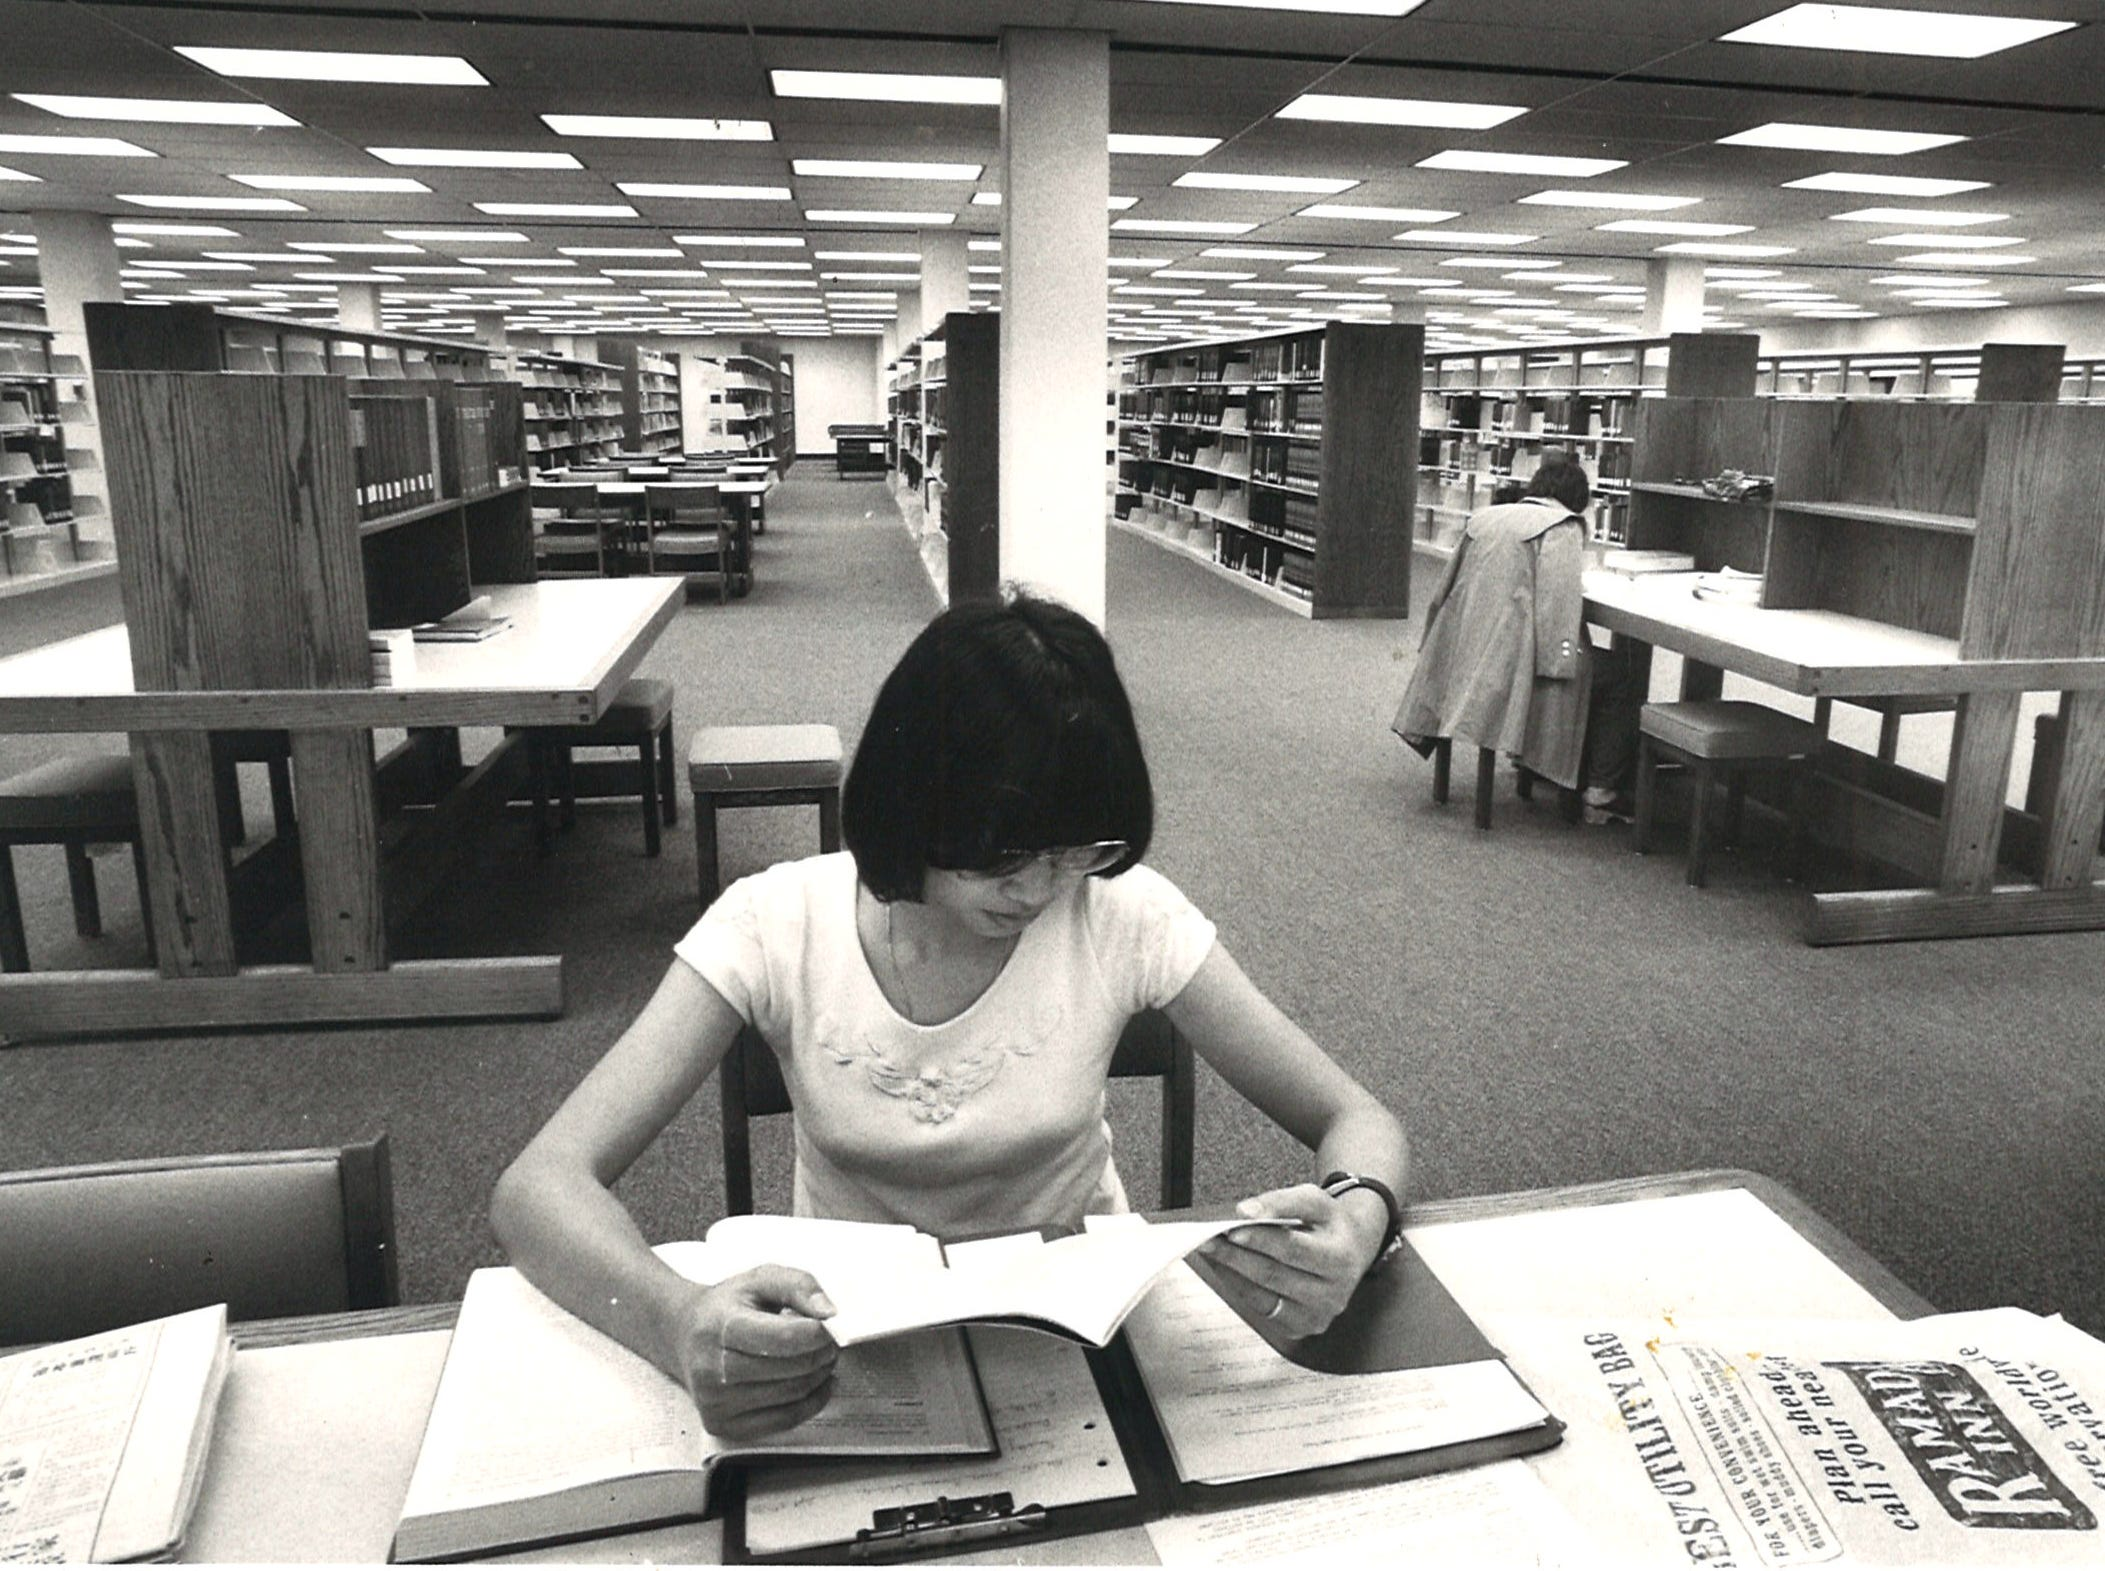 Corpus Christi State University student Kwan Ng studies in the new library on campus in September 1978.